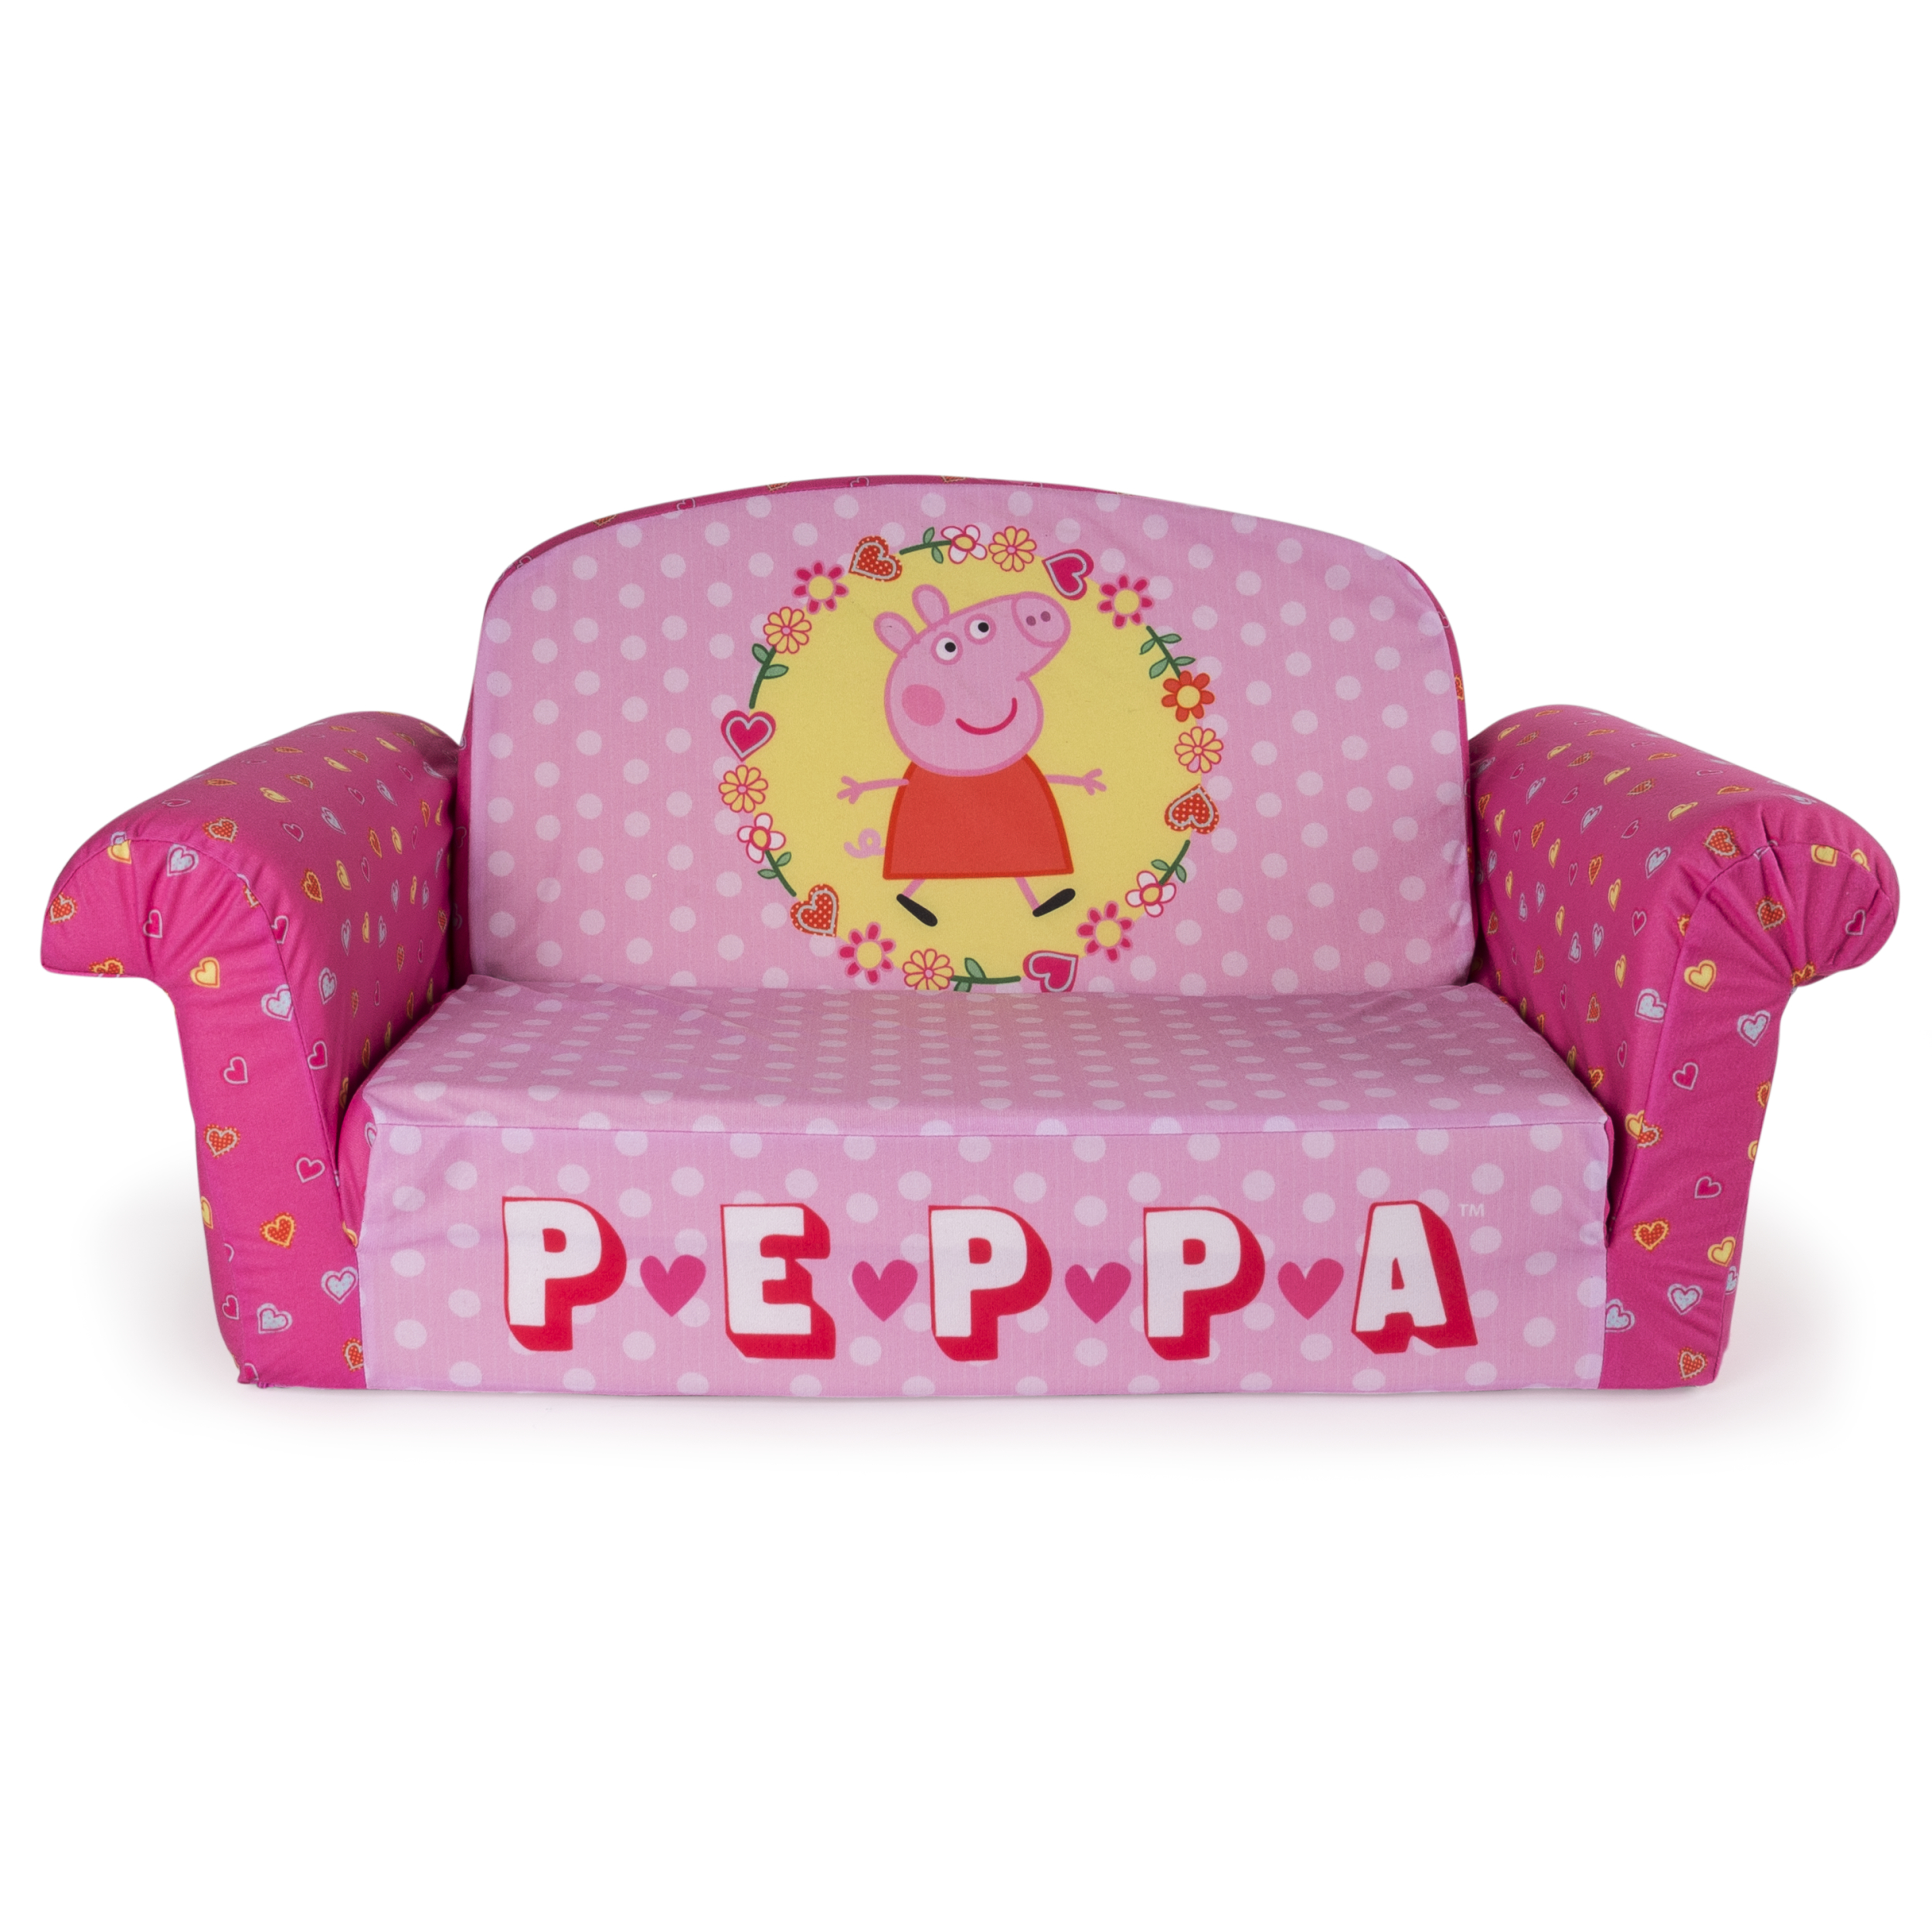 Marshmallow Furniture, Children's 2 in 1 Flip Open Foam Sofa, Peppa Pig, by Spin Master by Spin Master Ltd